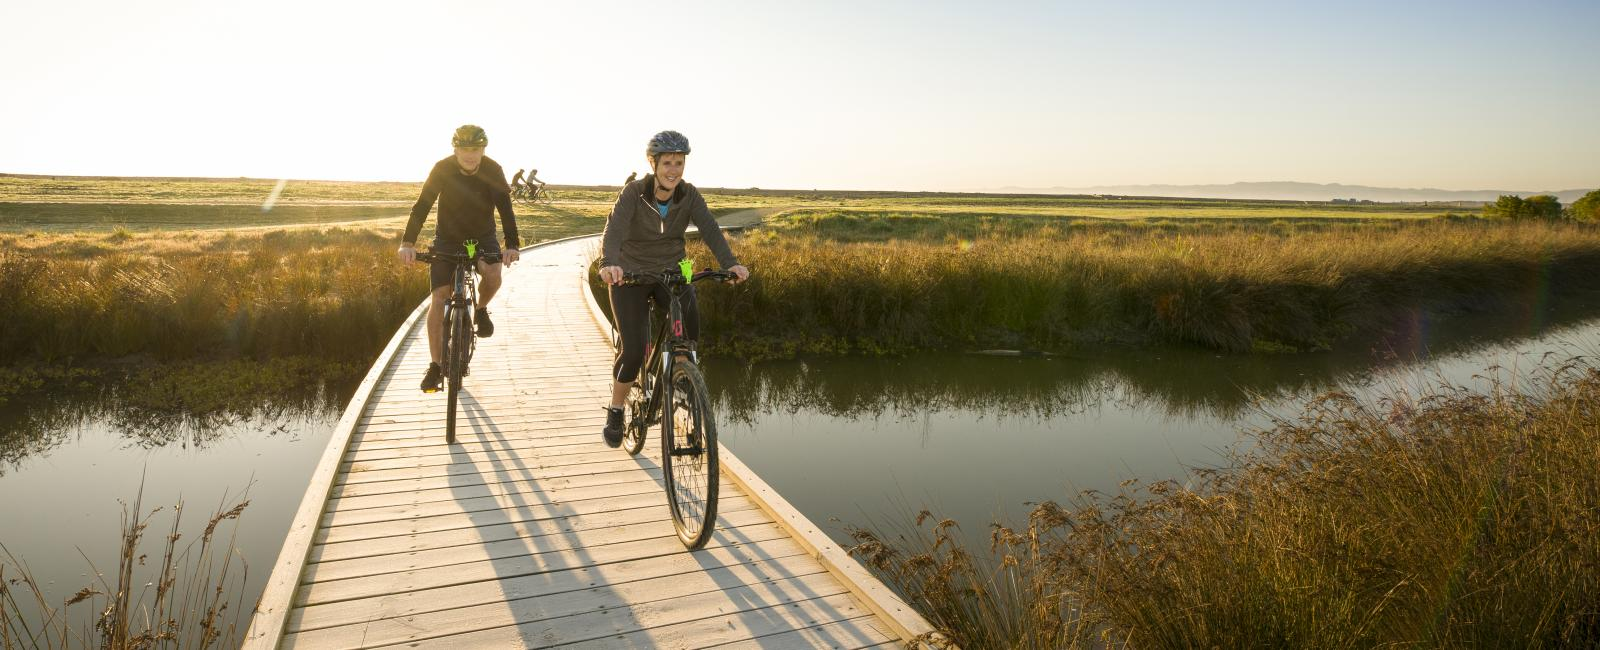 Tākaro Trails Cycle Tours